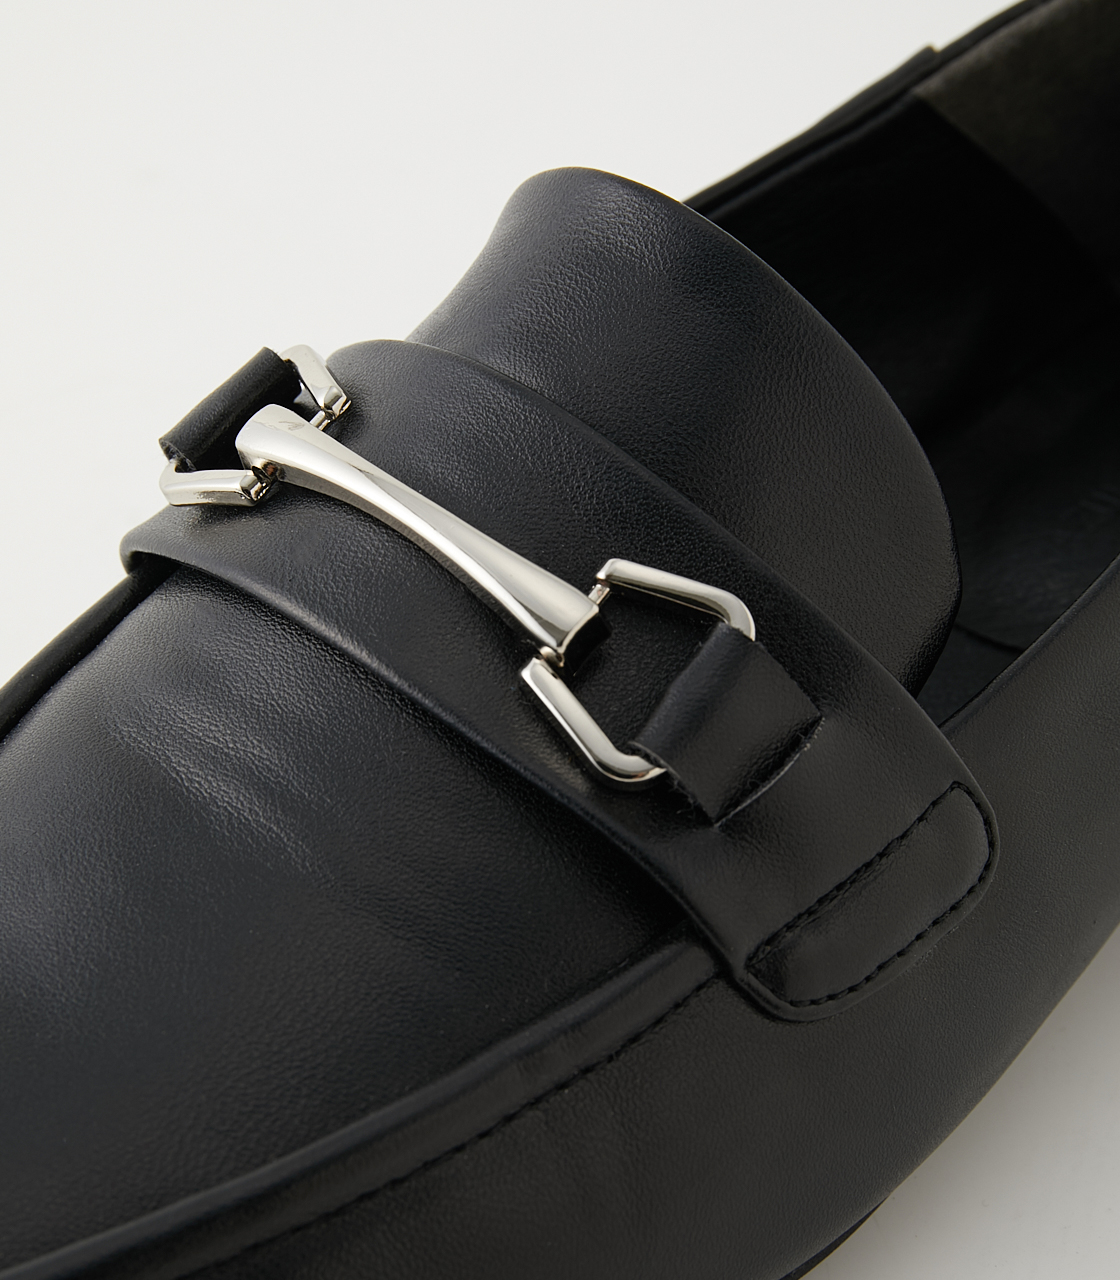 BABOUCHE LOAFER/バブーシュローファー 詳細画像 BLK 6